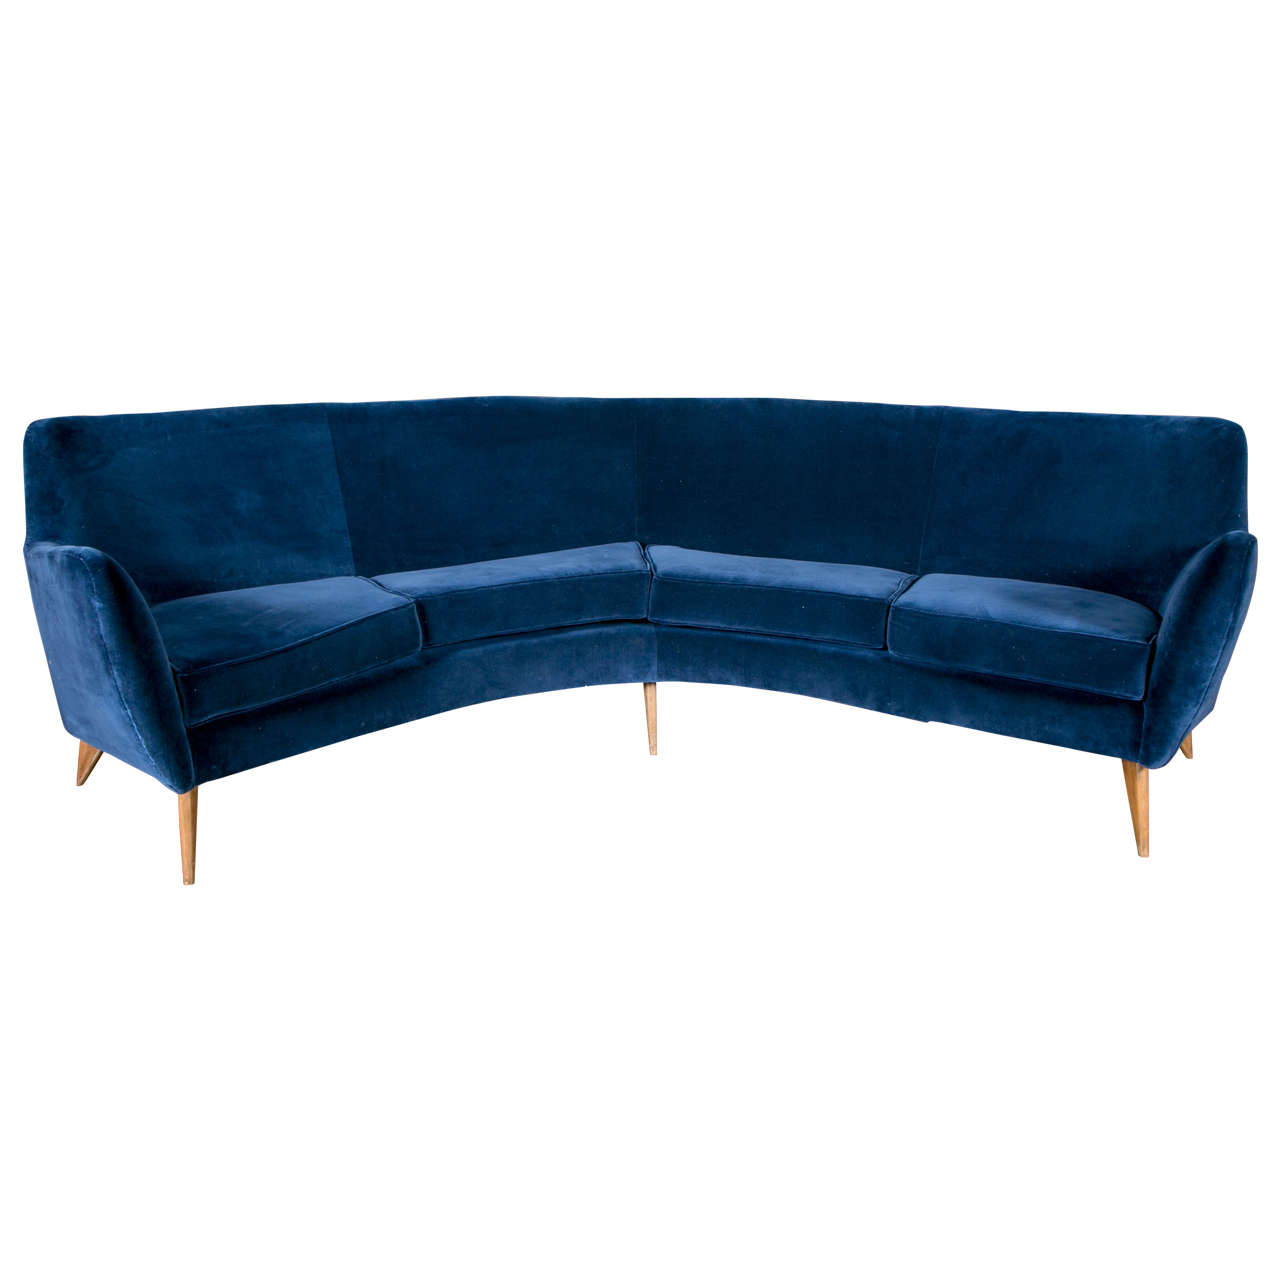 Vintage curved sofa for sale